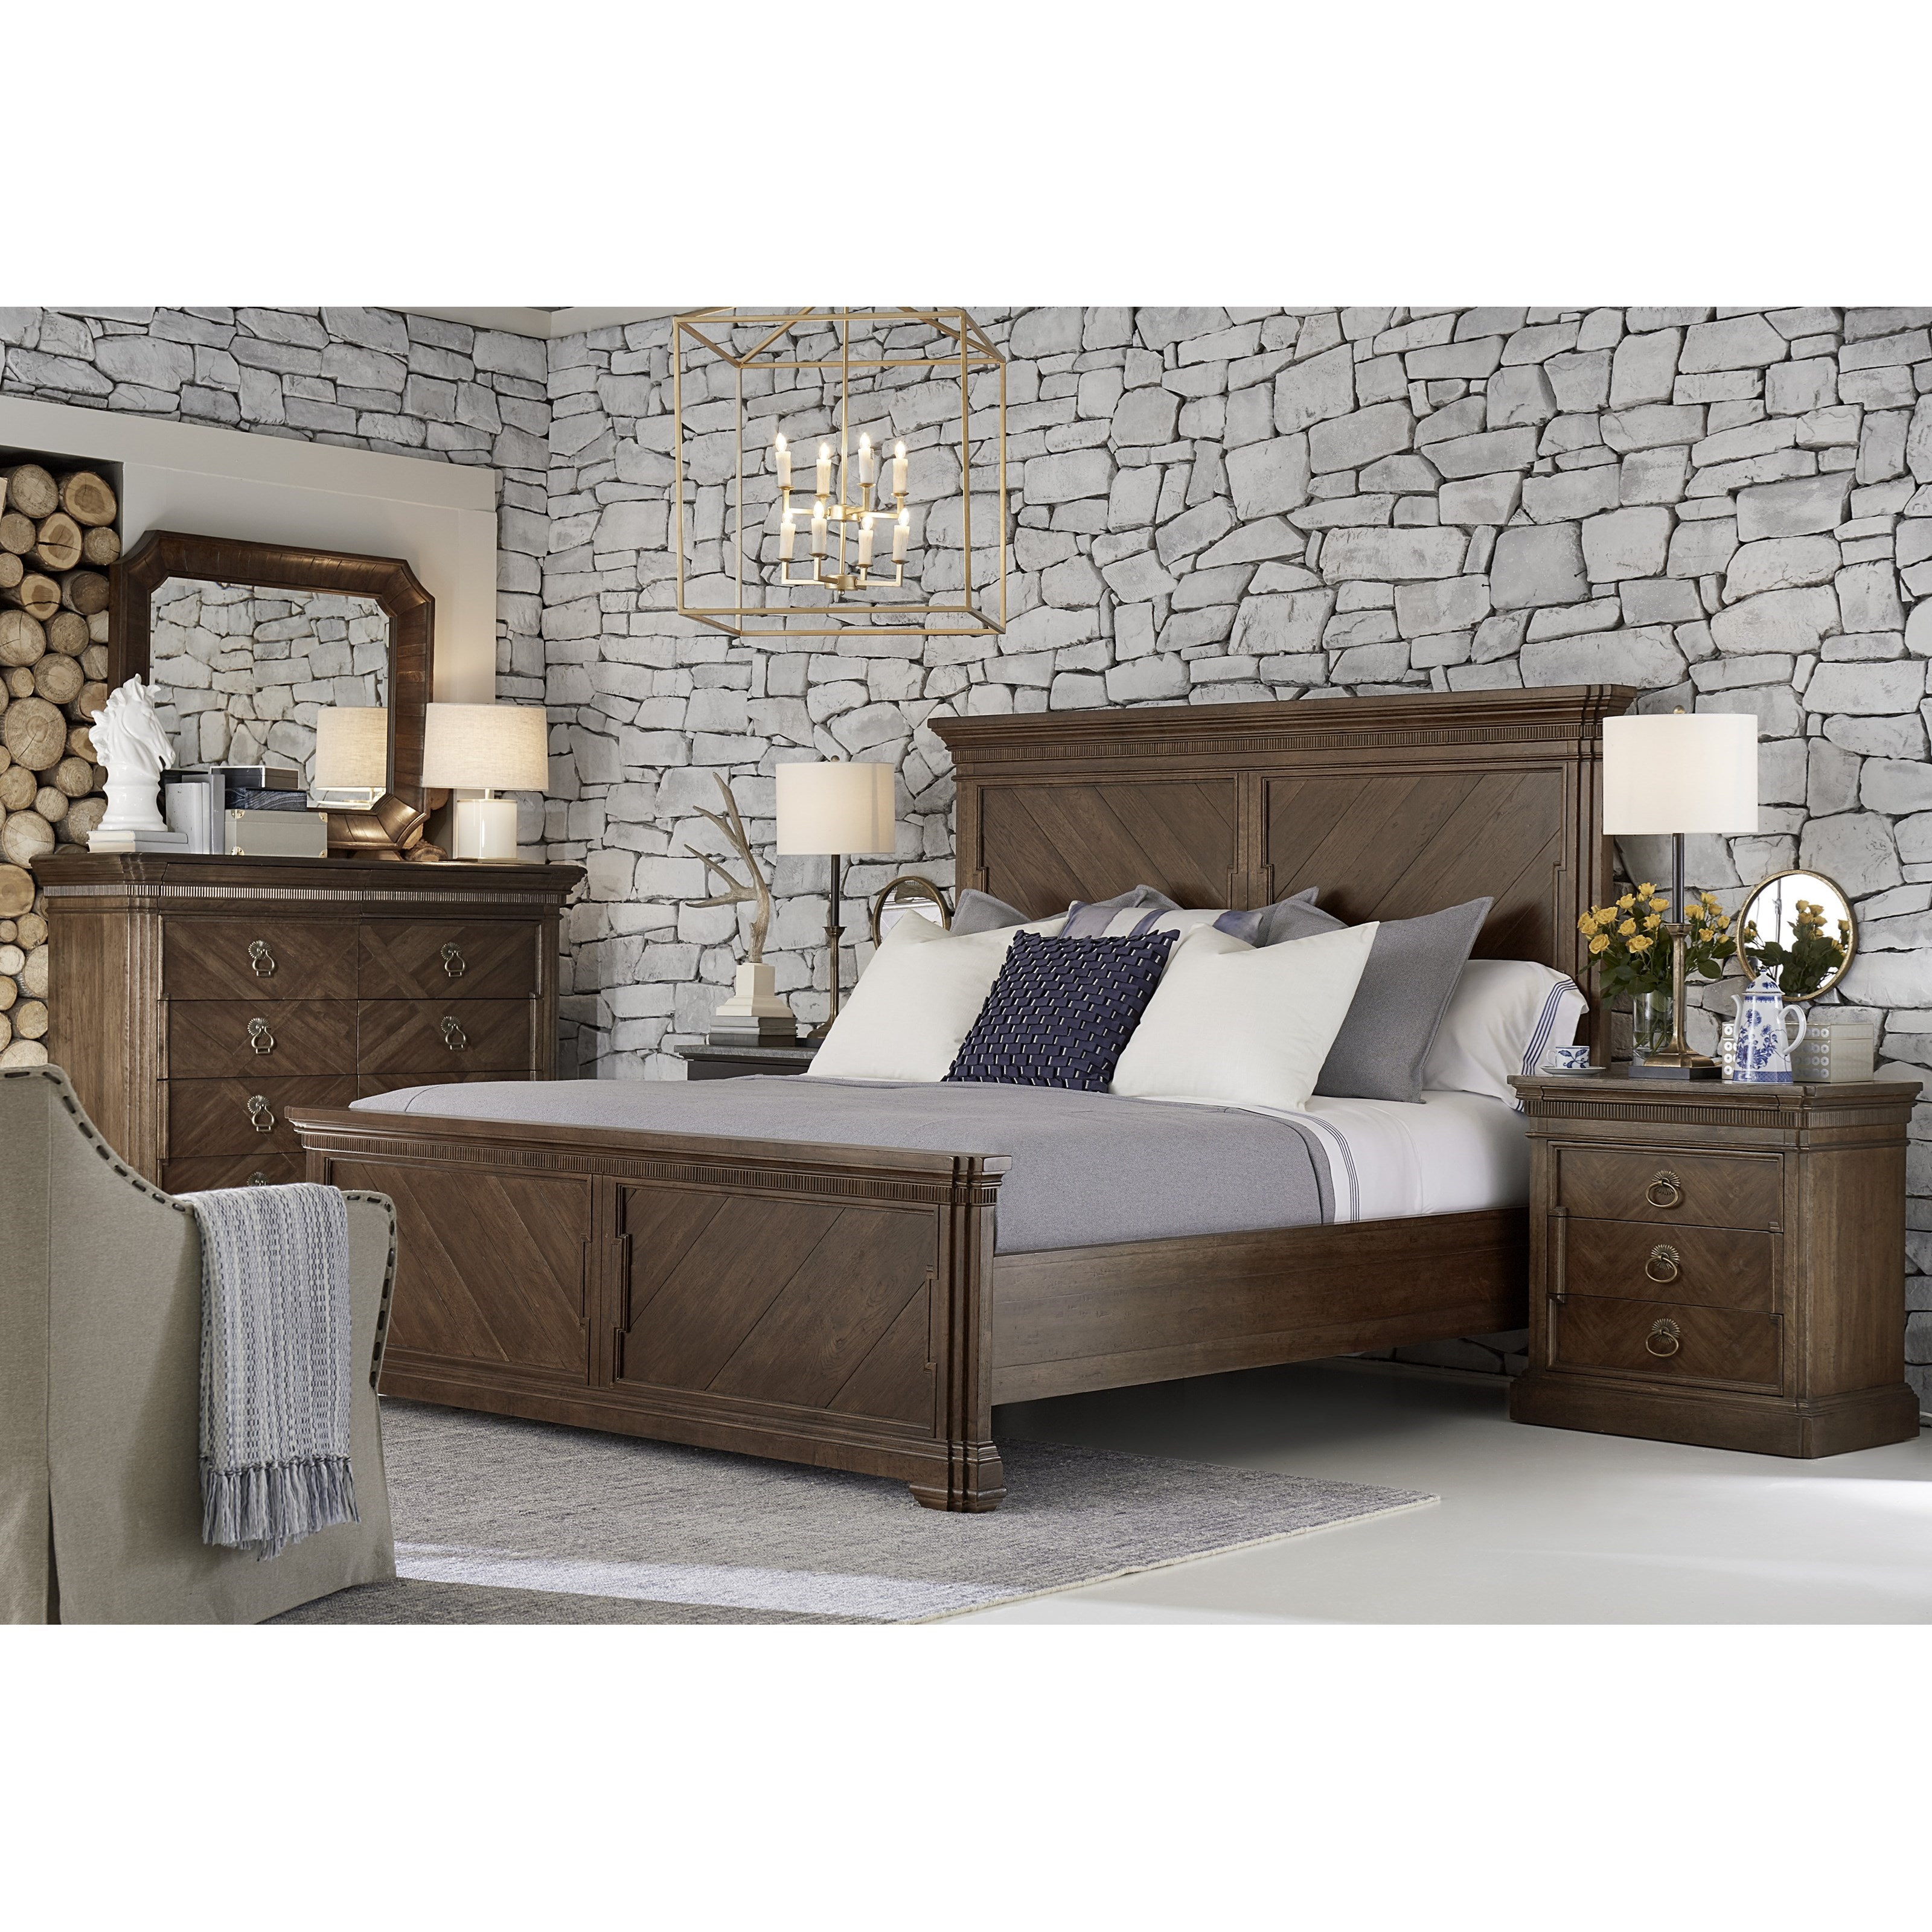 American Chapter Queen Bedroom Group by A.R.T. Furniture Inc at Home Collections Furniture